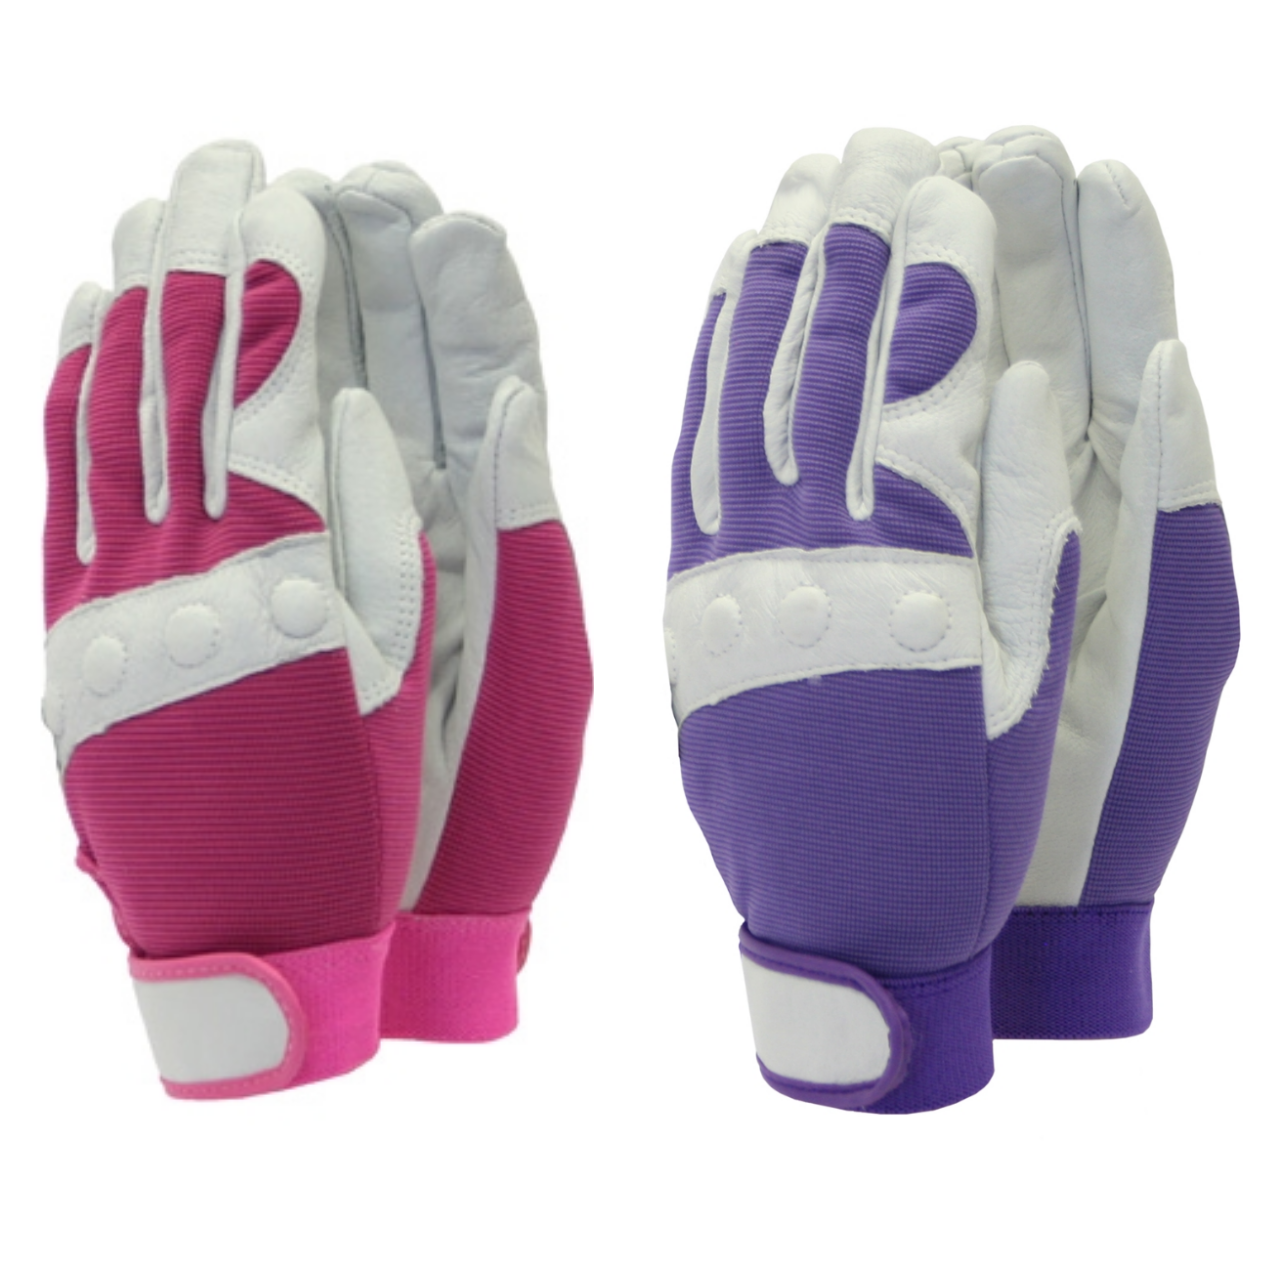 Town & Country Comfort Fit Gloves - Medium